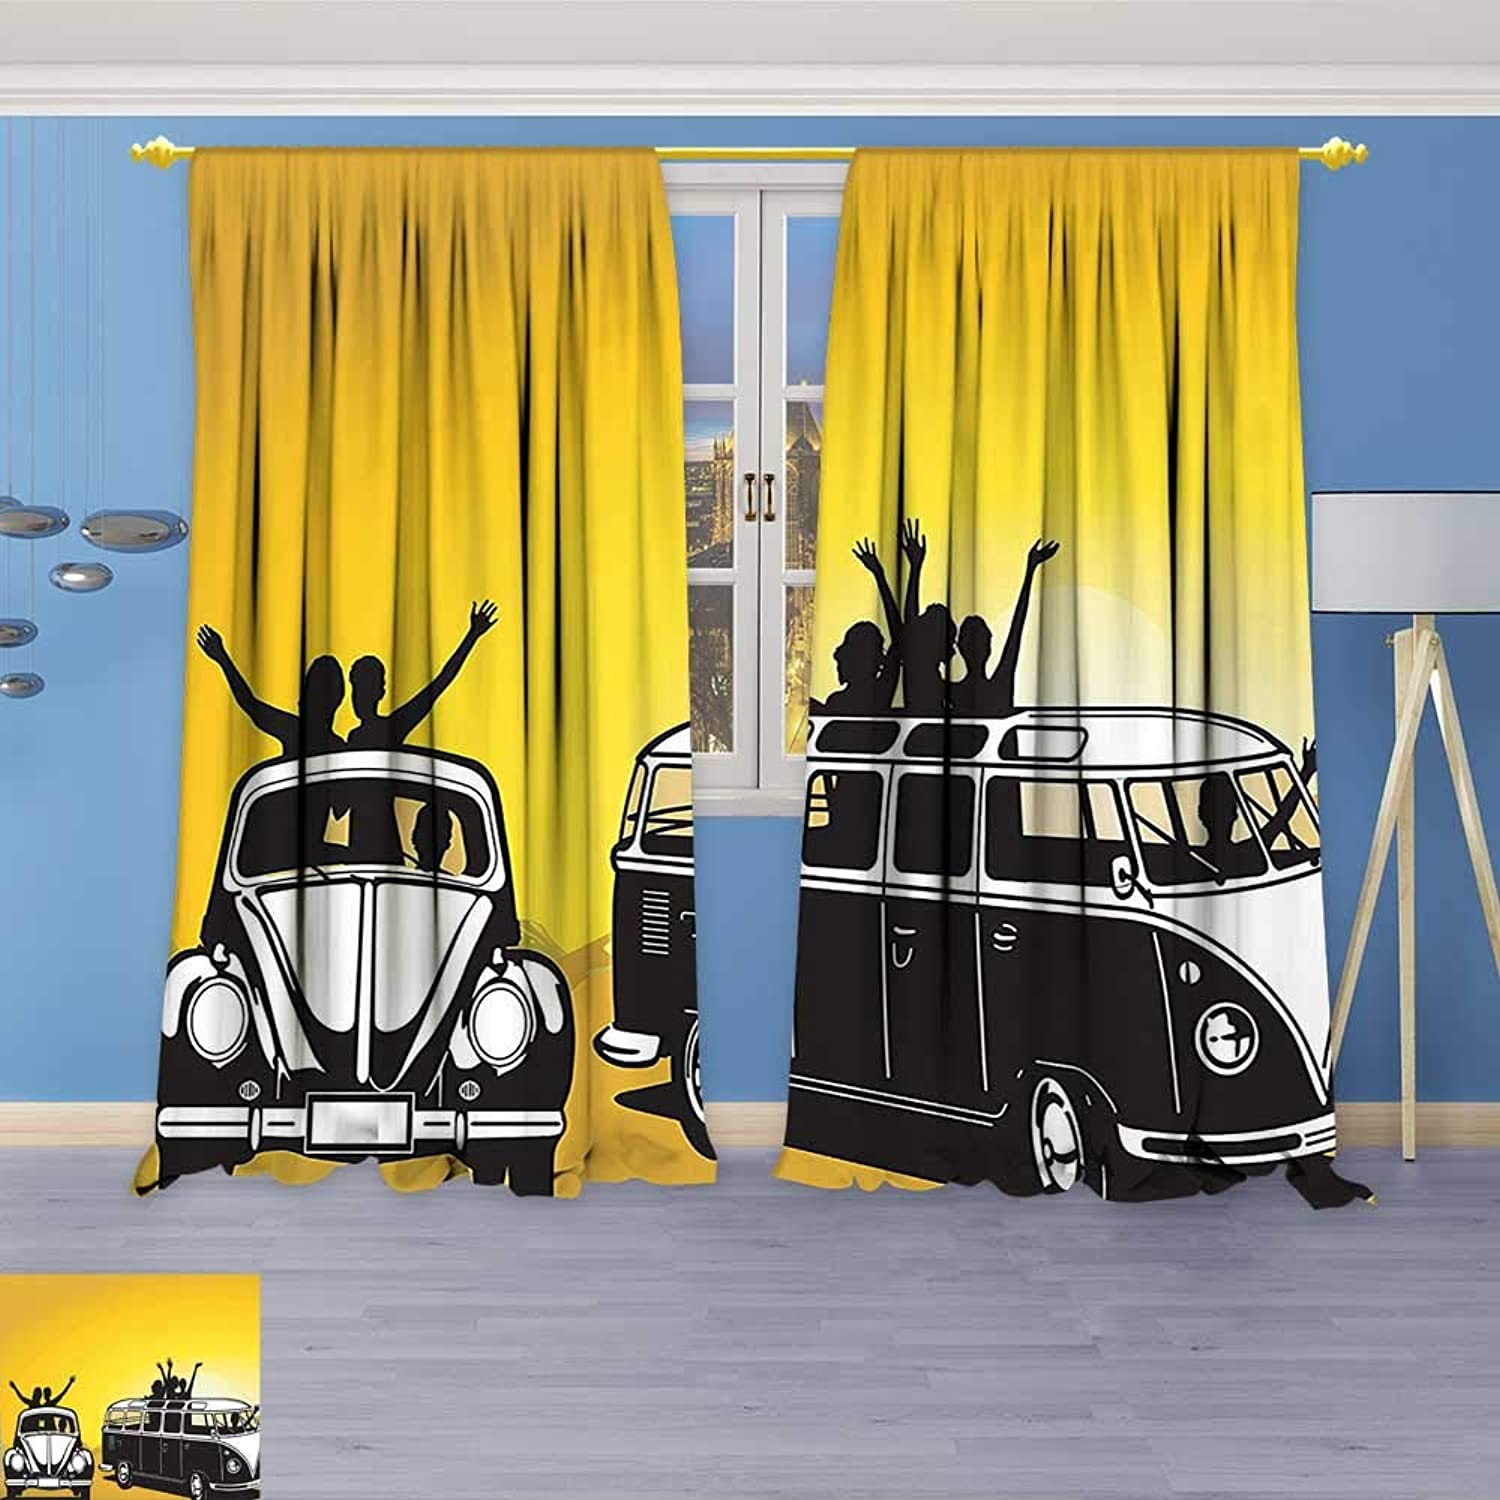 Kids Room Planets Curtains (2 Panels),Collection Traveling in The Sixties Hippy Car Transport Vehicle Hitchhiking Daring Camping Freedom Thermal Insulated Blackout Curtains with Star Prints